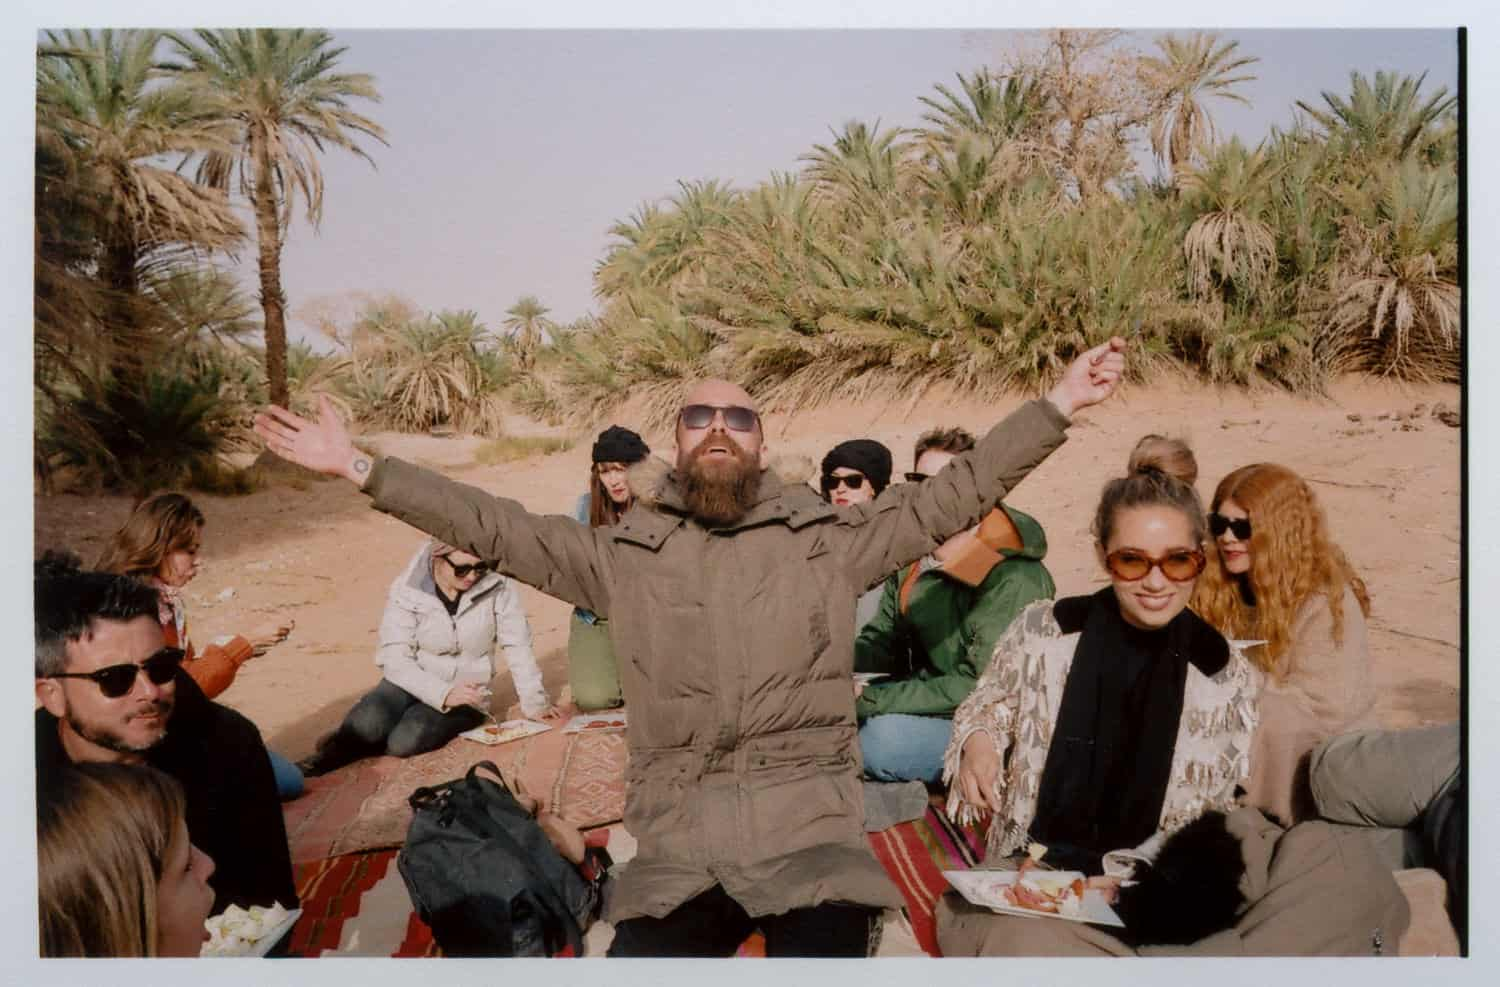 people having fun in a oasis in morocco